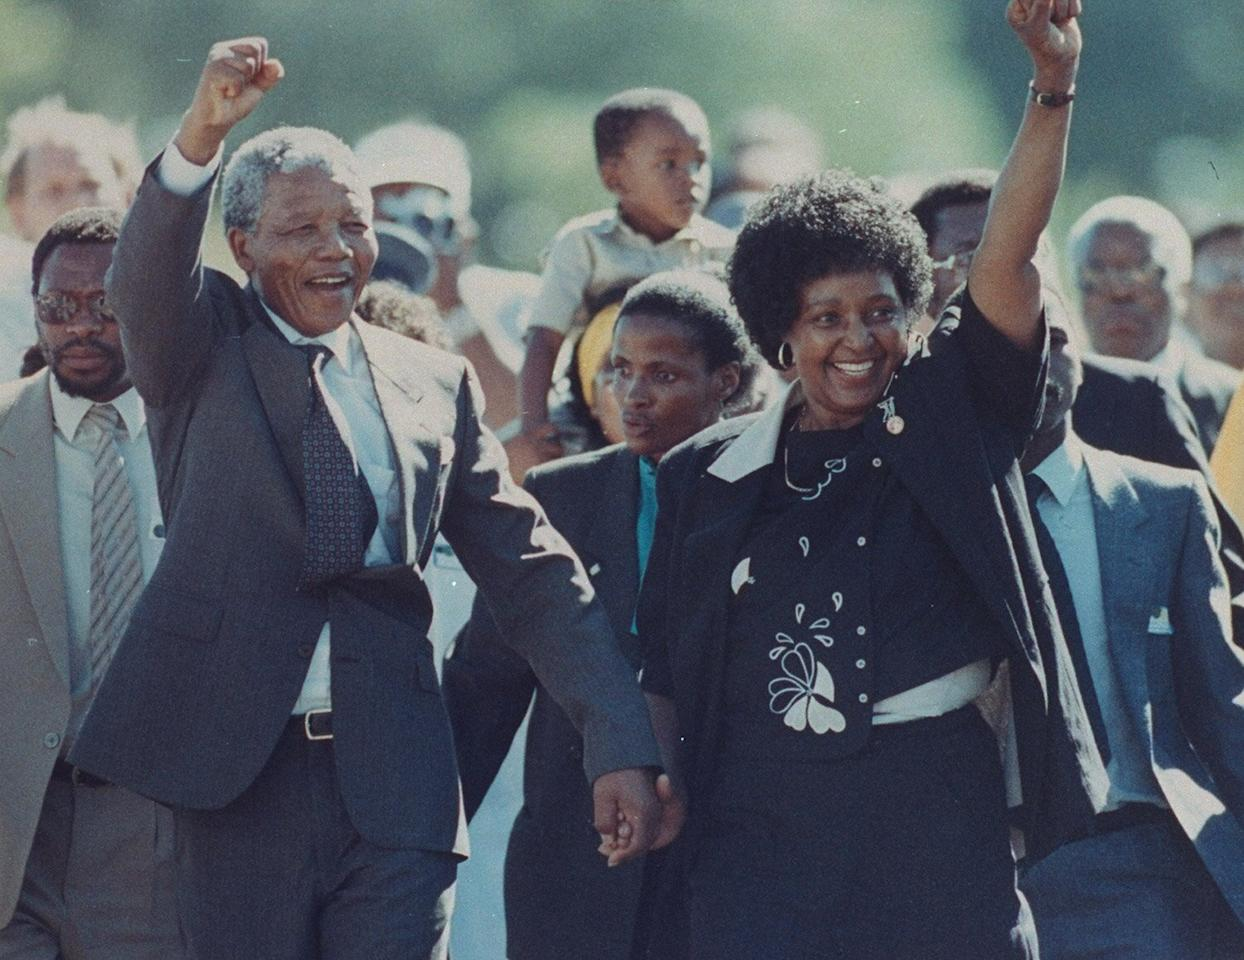 """The anti-apartheid South African revolutionary is seen with his then-wife Winnie raising his fist upon his release from Victor Verster prison after being jailed for 27 years.  Four years later, he was inaugurated as South Africa's first democratically elected president and served one term before focusing on his philanthropic work for the <a href=""""https://www.nelsonmandelachildrensfund.com/"""">Nelson Mandela Children's Fund</a>, the <a href=""""https://www.nelsonmandela.org/"""">Nelson Mandela Foundation</a> and <a href=""""https://mandelarhodes.org/"""">The Mandela Rhodes Foundation</a>.  Mandela died in 2013 and is remembered for his relentless fight for equality, work to combat poverty, HIV and AIDs. He's received over 200 honors, including the Nobel Peace Prize (1993), Amnesty International's Ambassador of Conscience Award (2006), Presidential Medal of Freedom (2002) and the Olympic Gold Order (1994)."""